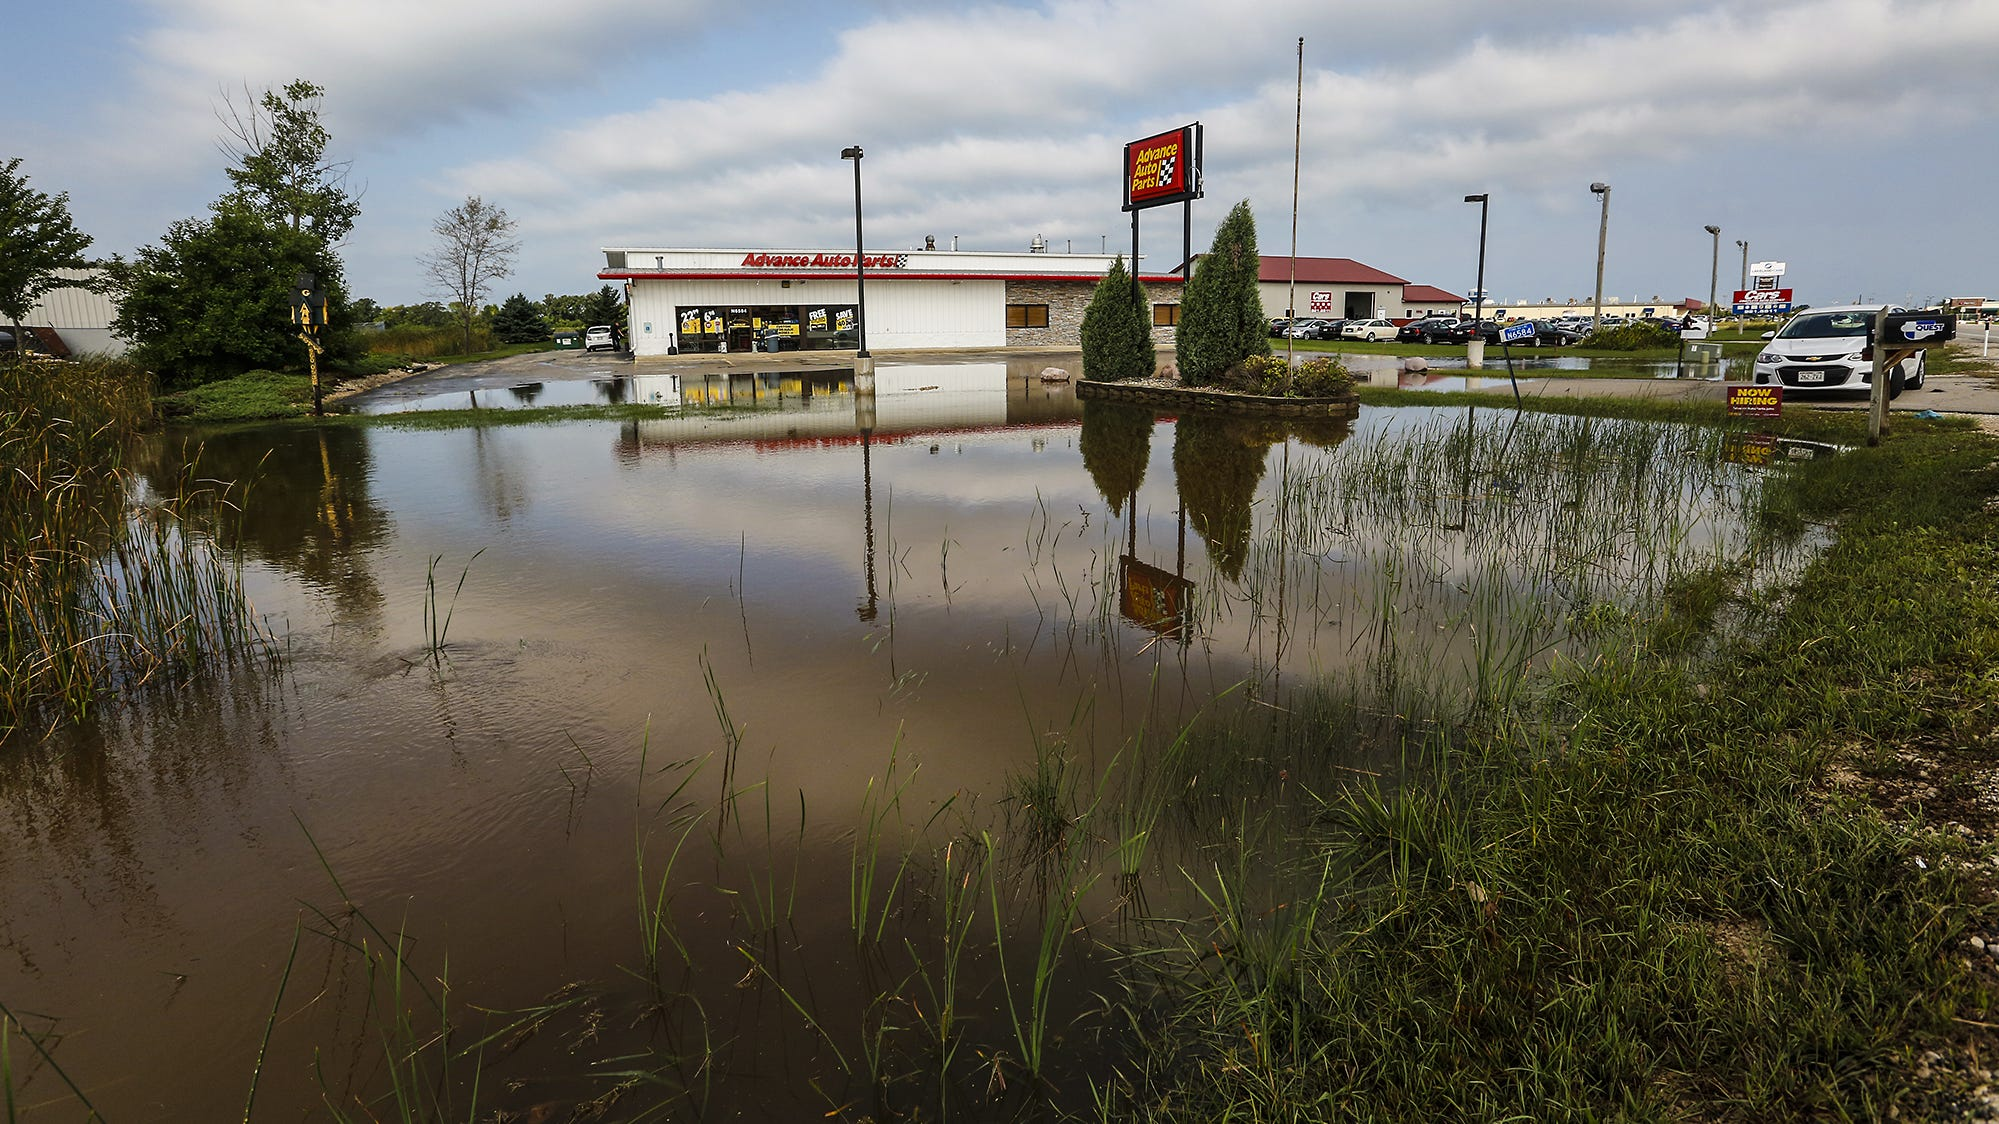 Wisconsin Records Highest Rainfall Totals Around The Country Over Last Two Weeks